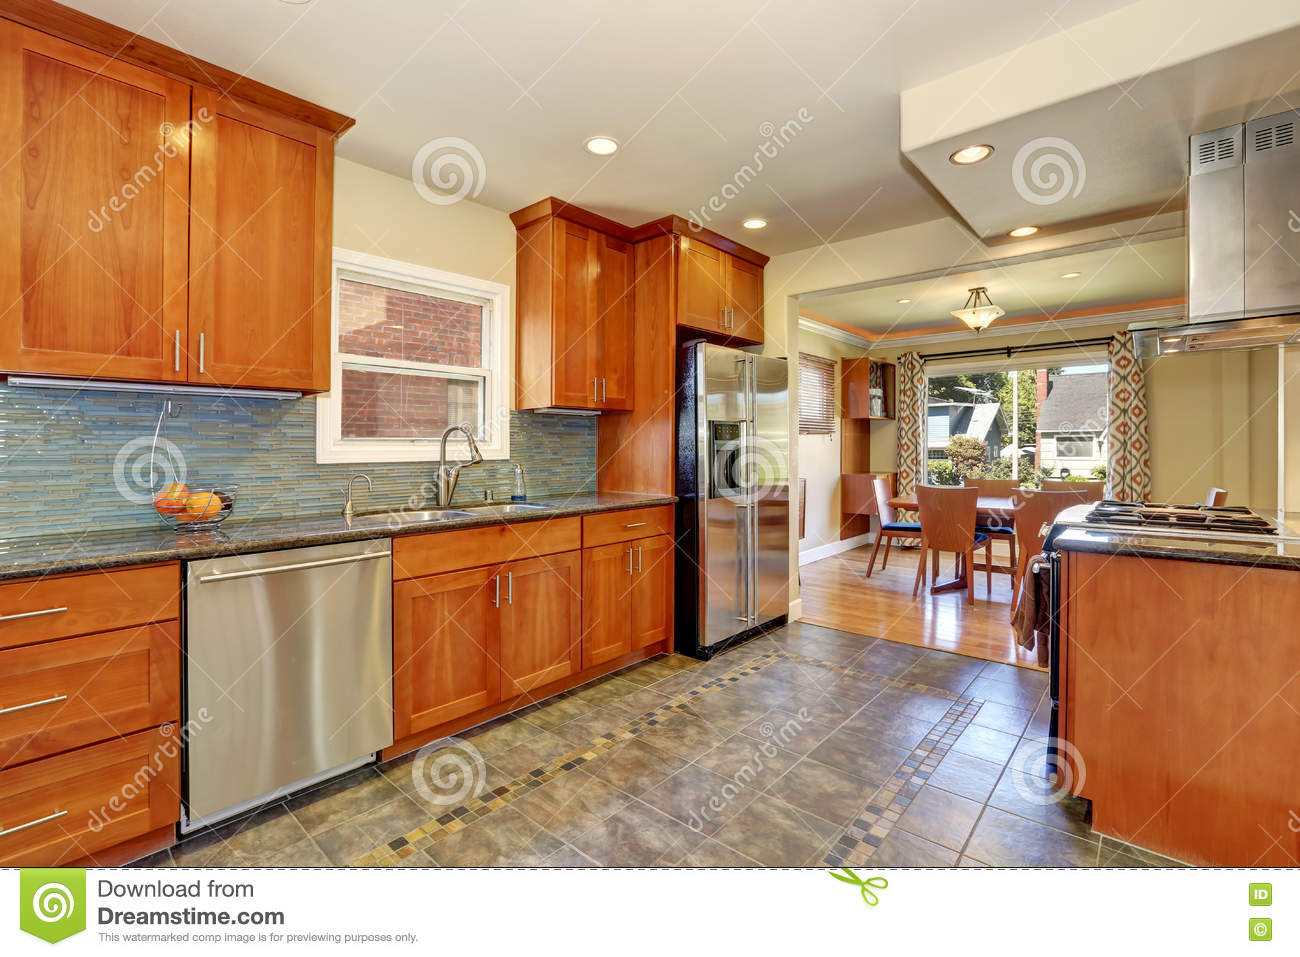 Kitchen Interior With Tile Flooring And Brown Cabinets Stock Photo Image Of Apartment Ceiling 76510092